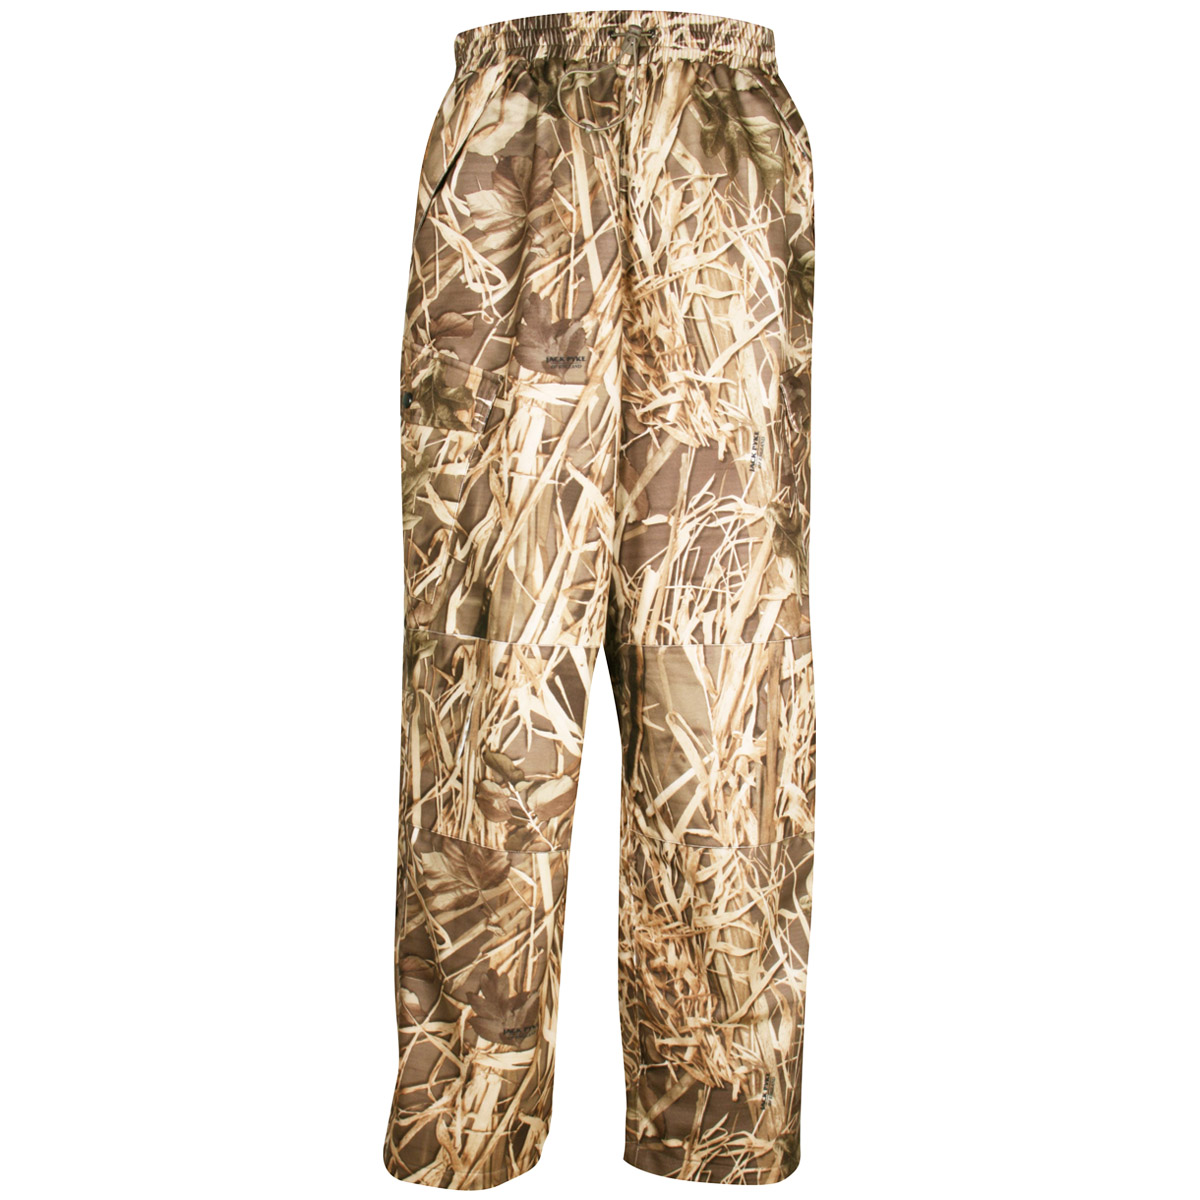 JACK PYKE TECHNICAL FEATHERLITE WATERPROOF TROUSERS MENS S-3XL OLIVE HUNTING